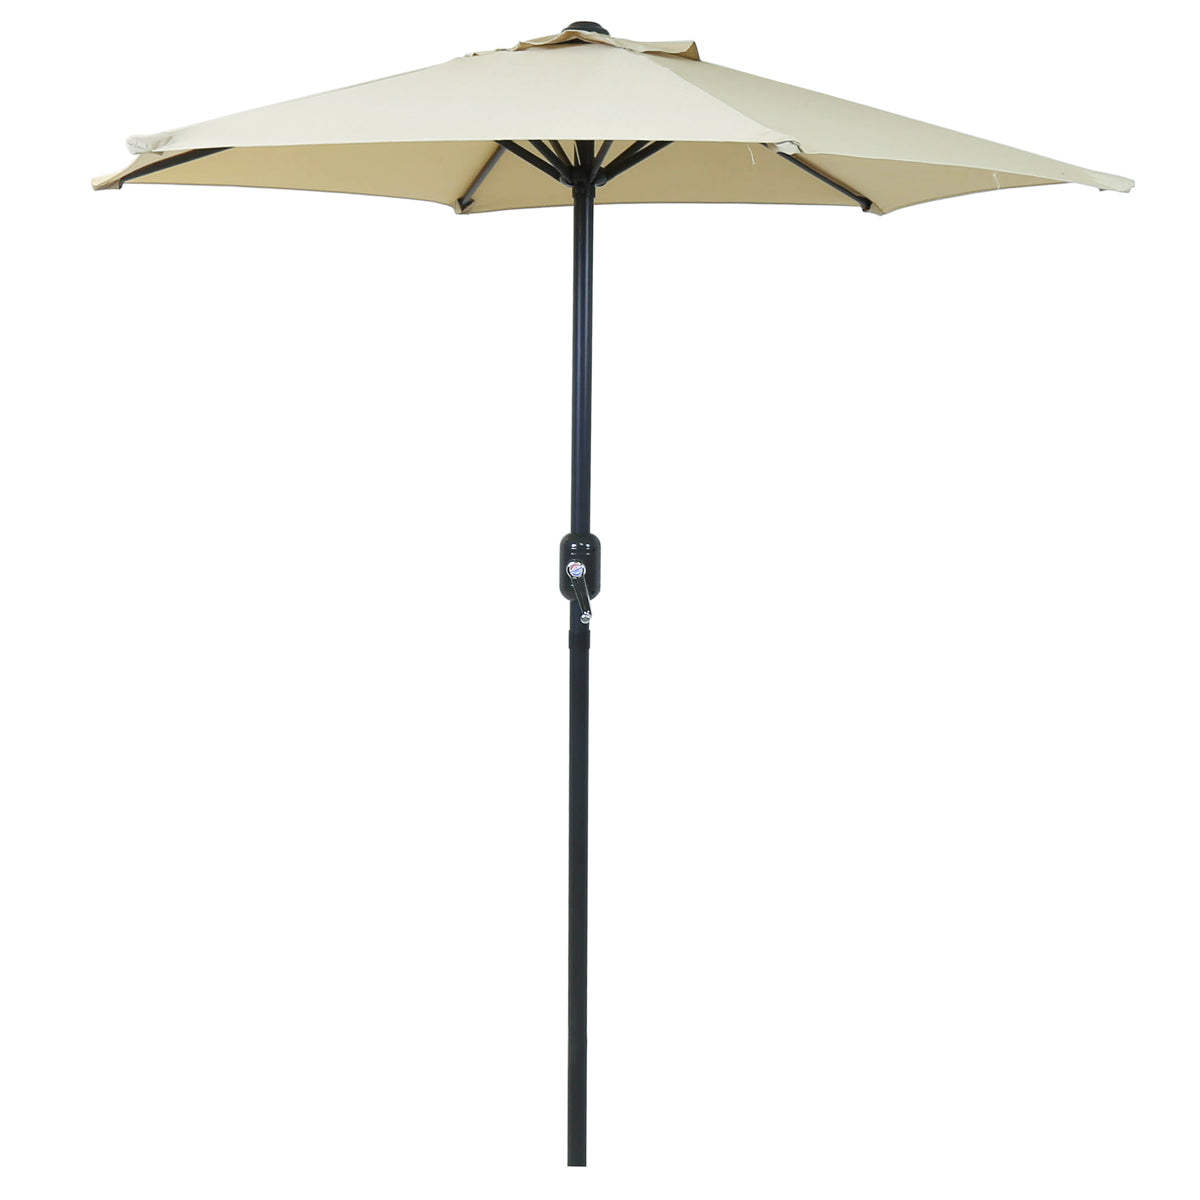 Charles Bentley 2M Garden Parasol Umbrella with Crank Function - Beige